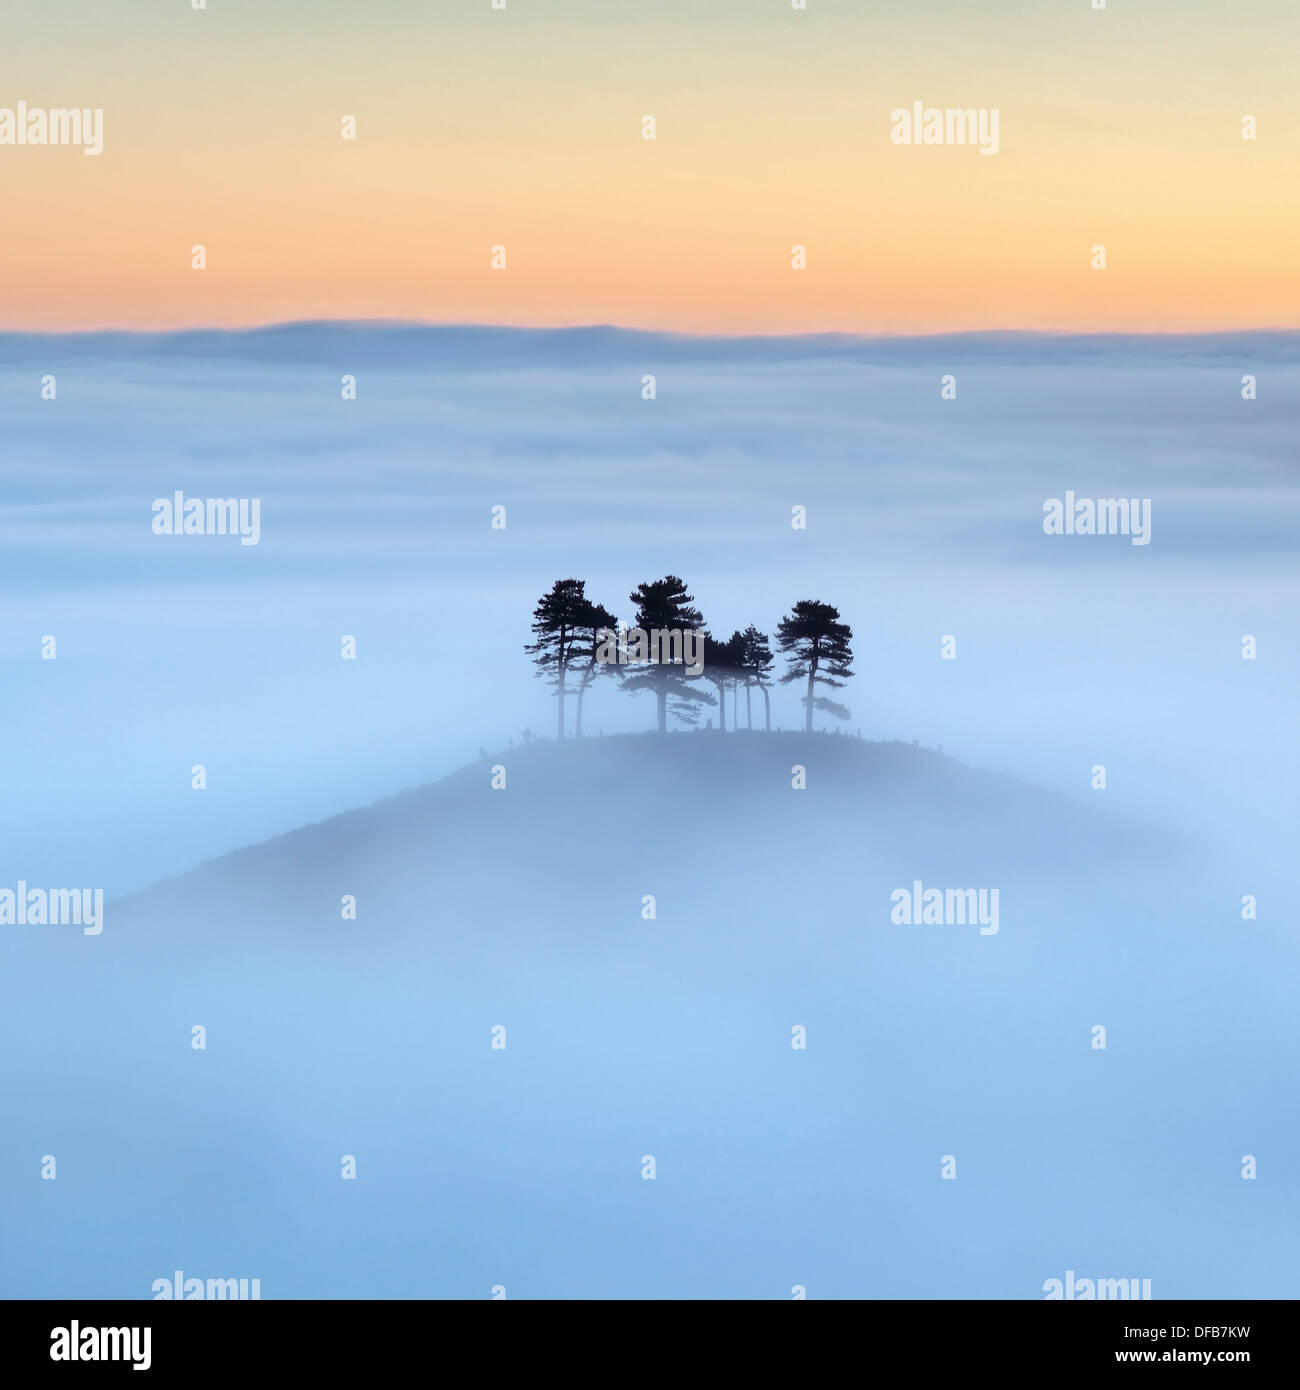 Colmer's Hill in Dorset, UK, surrounded by mist in autumn before sunrise. - Stock Image